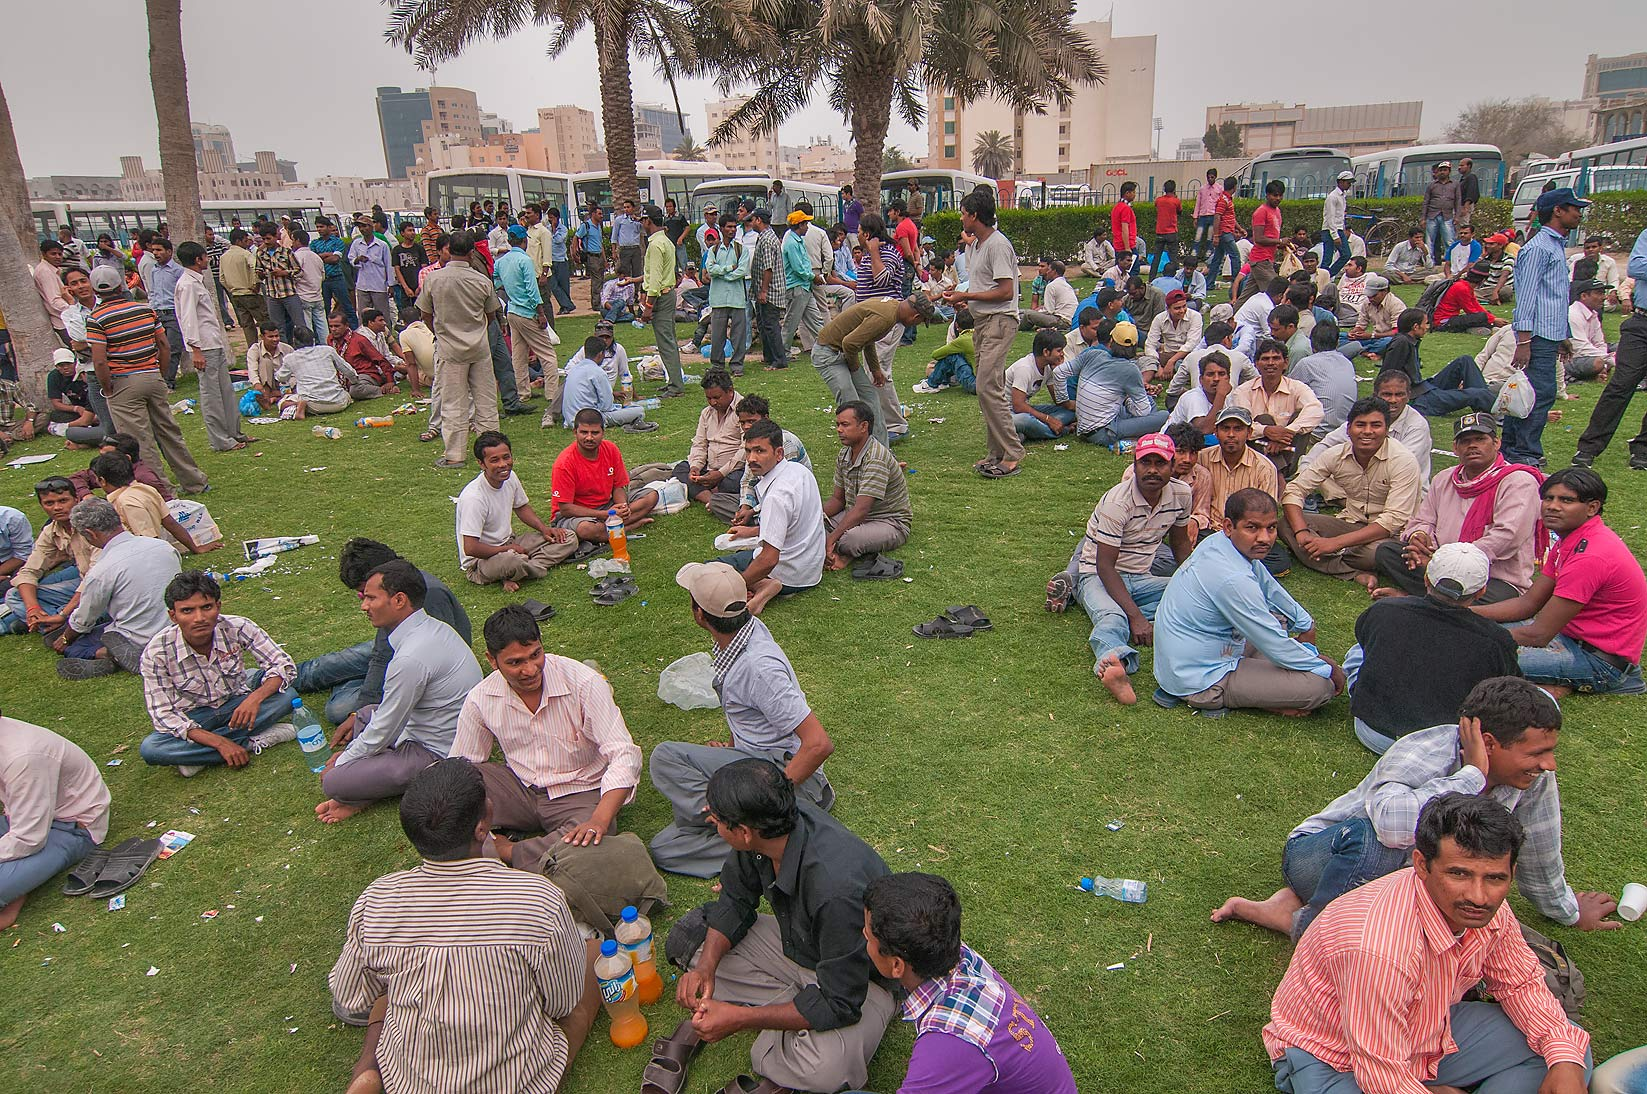 Migrant workers gathering on a lawn near Central Bus Station Al Ghanim. Doha, Qatar